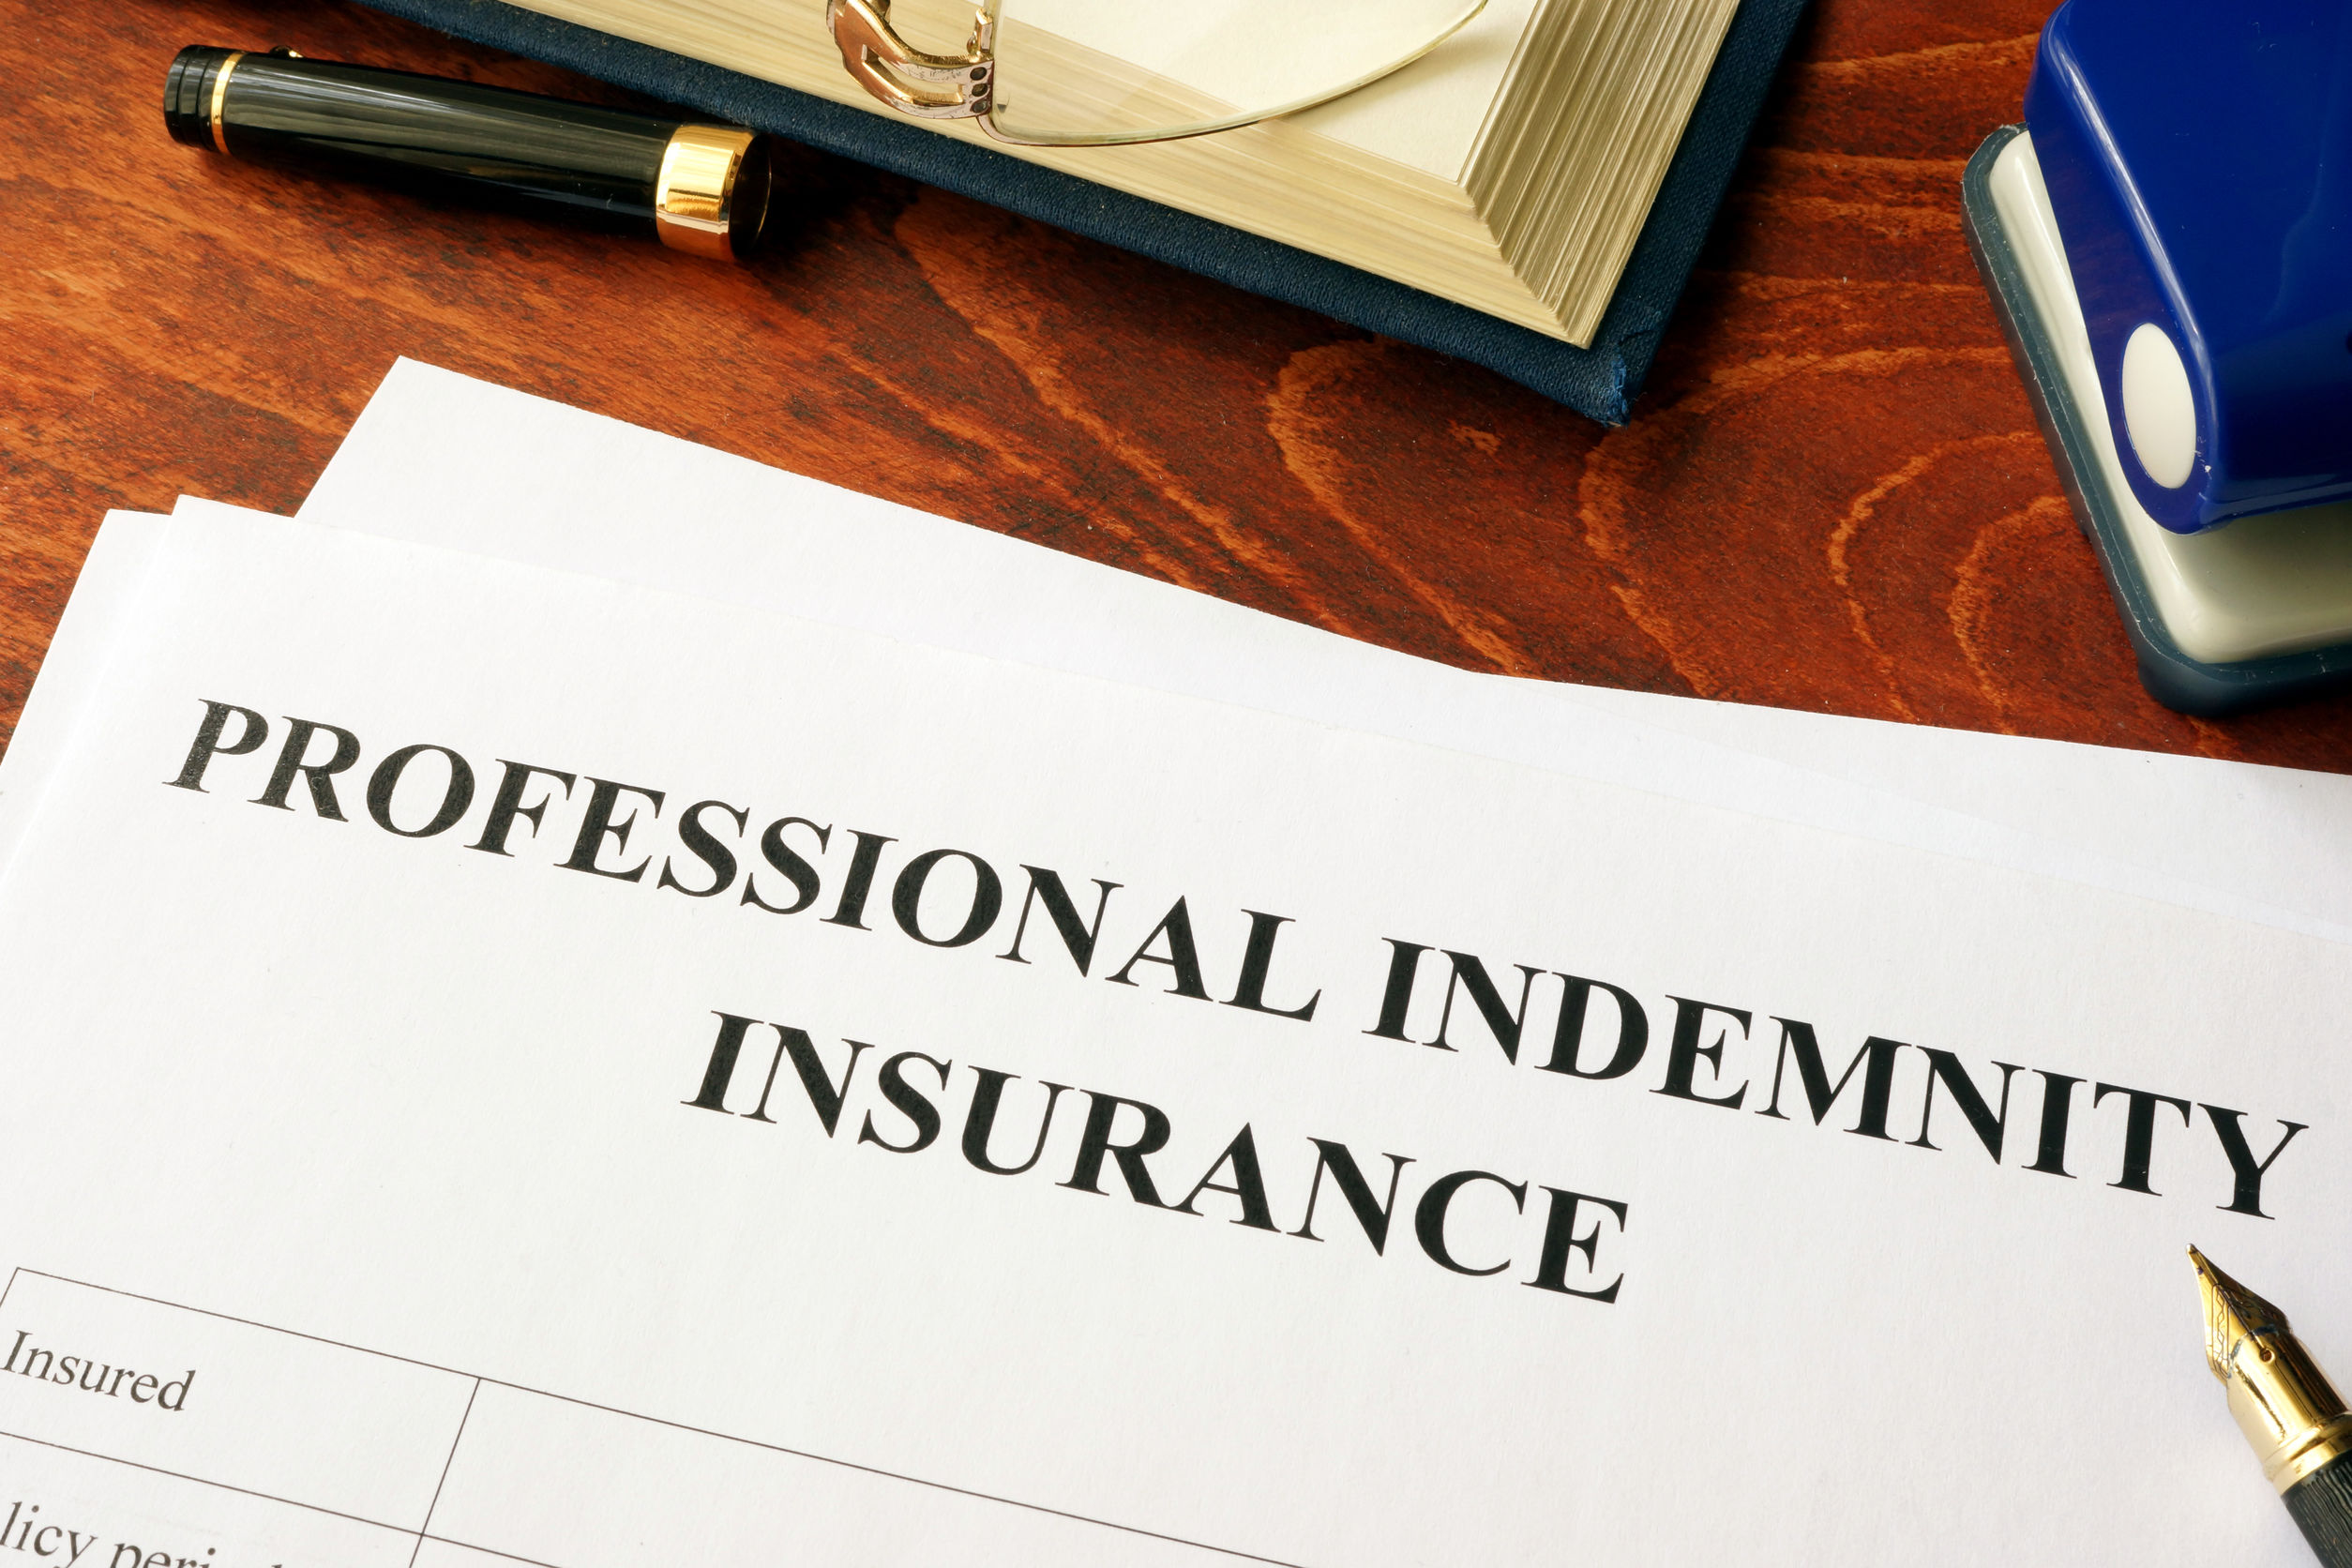 What are the coverage and benefits of professional indemnity insurance?